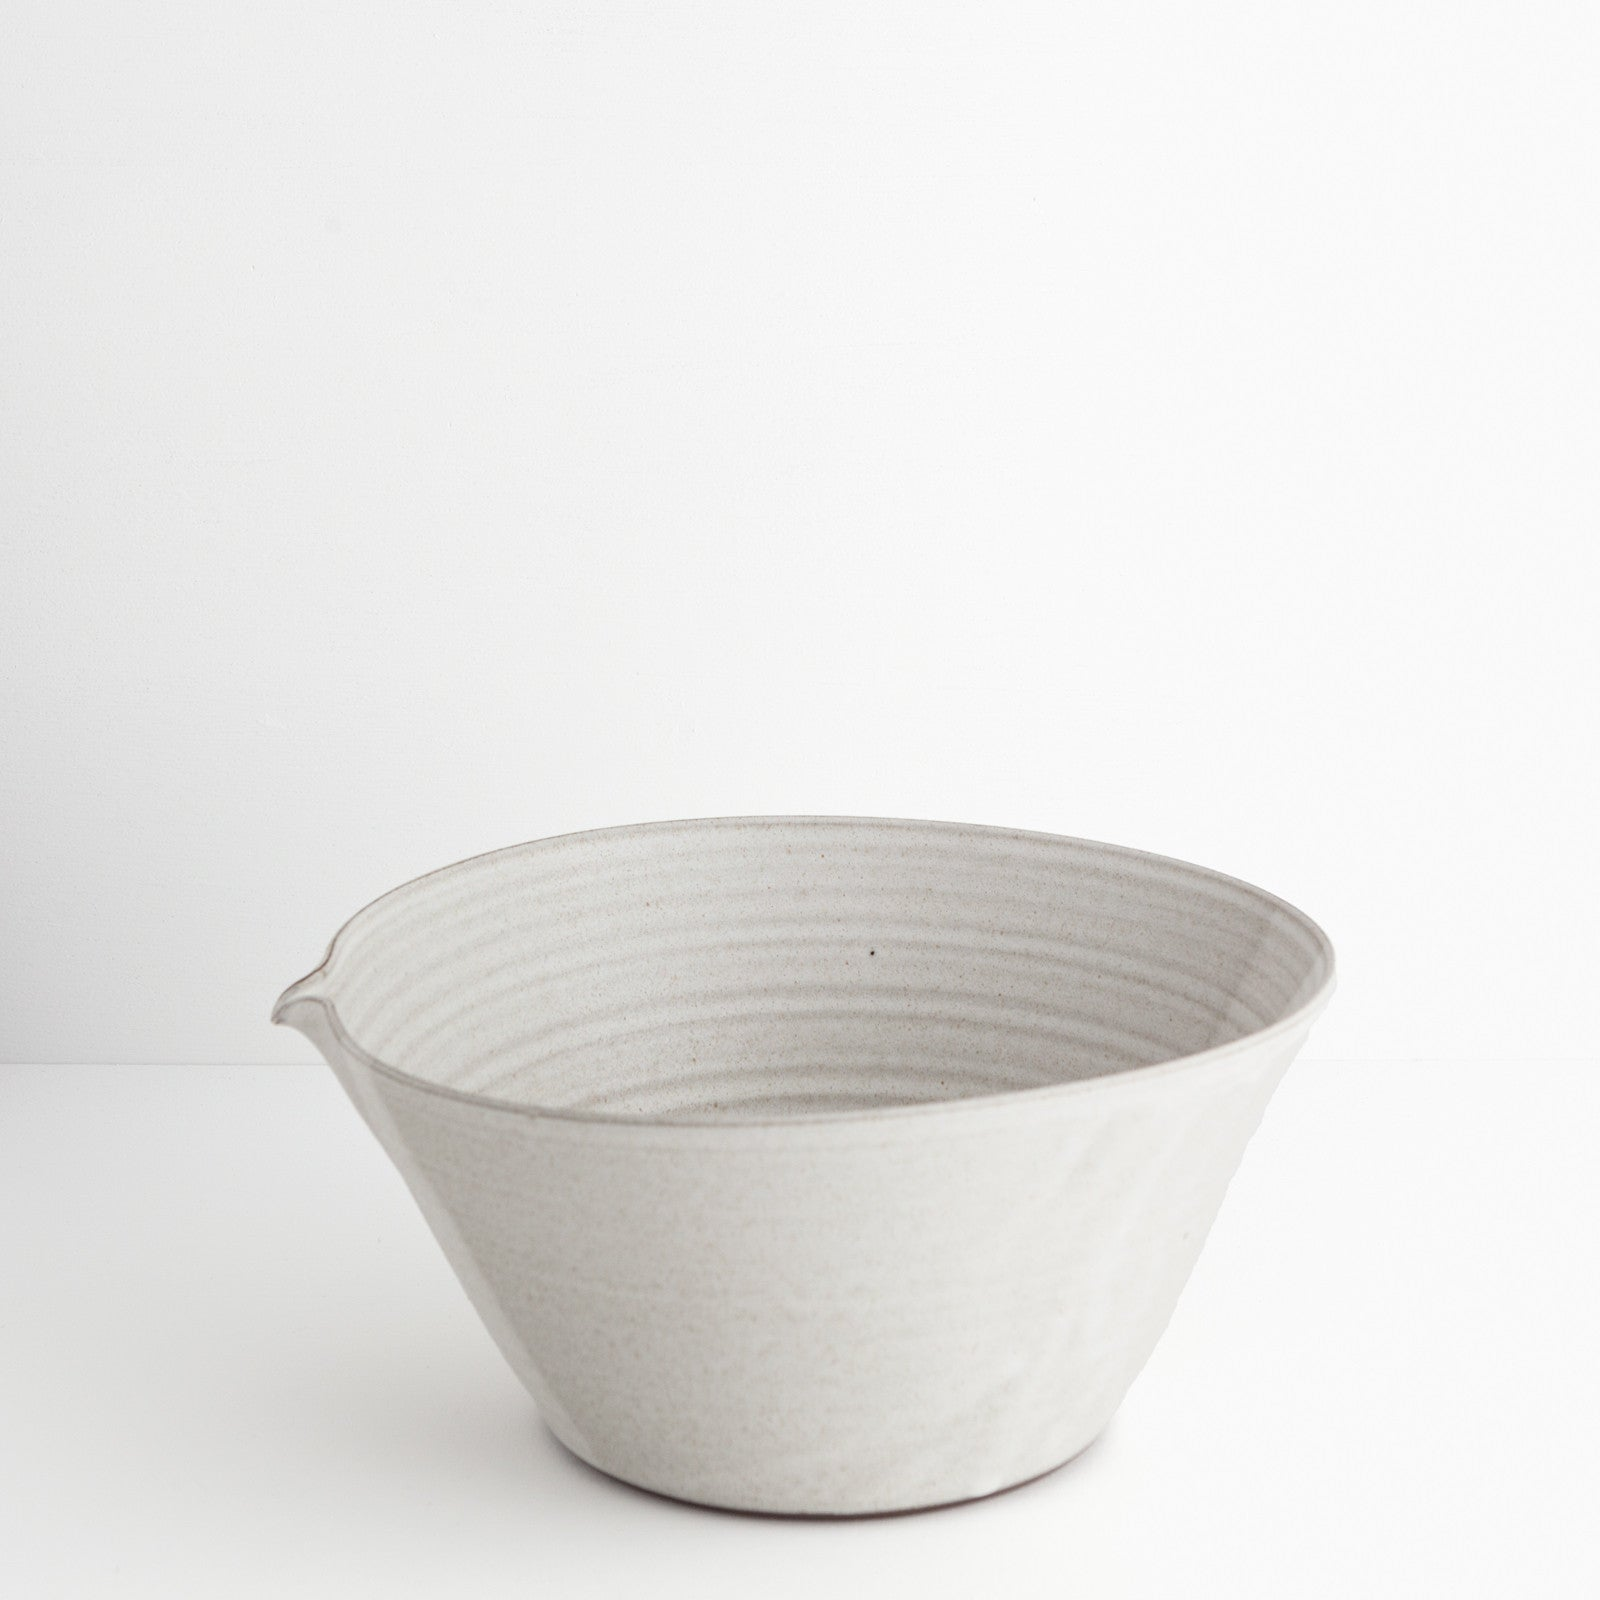 Large Stoneware Bowl w/ Spout, Oatmeal